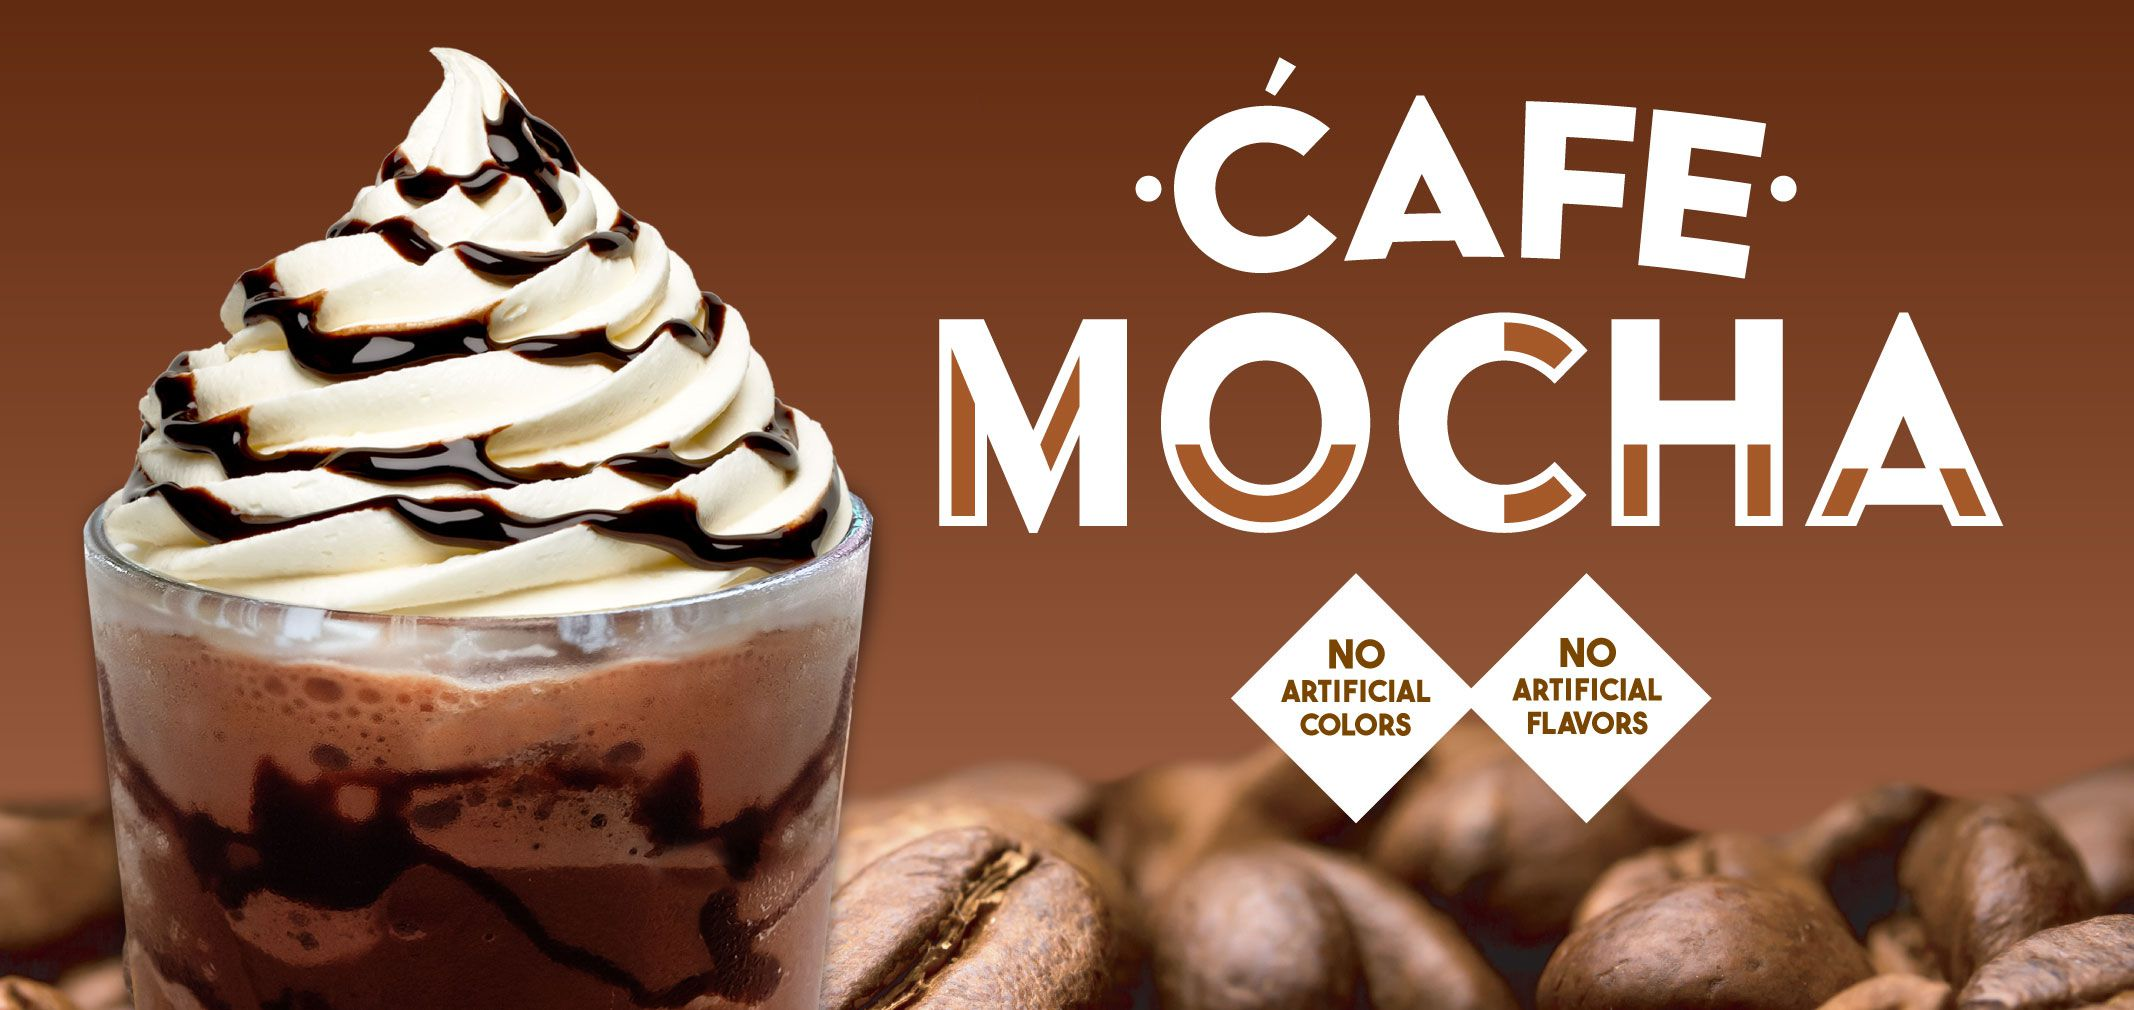 cafe mocha label image